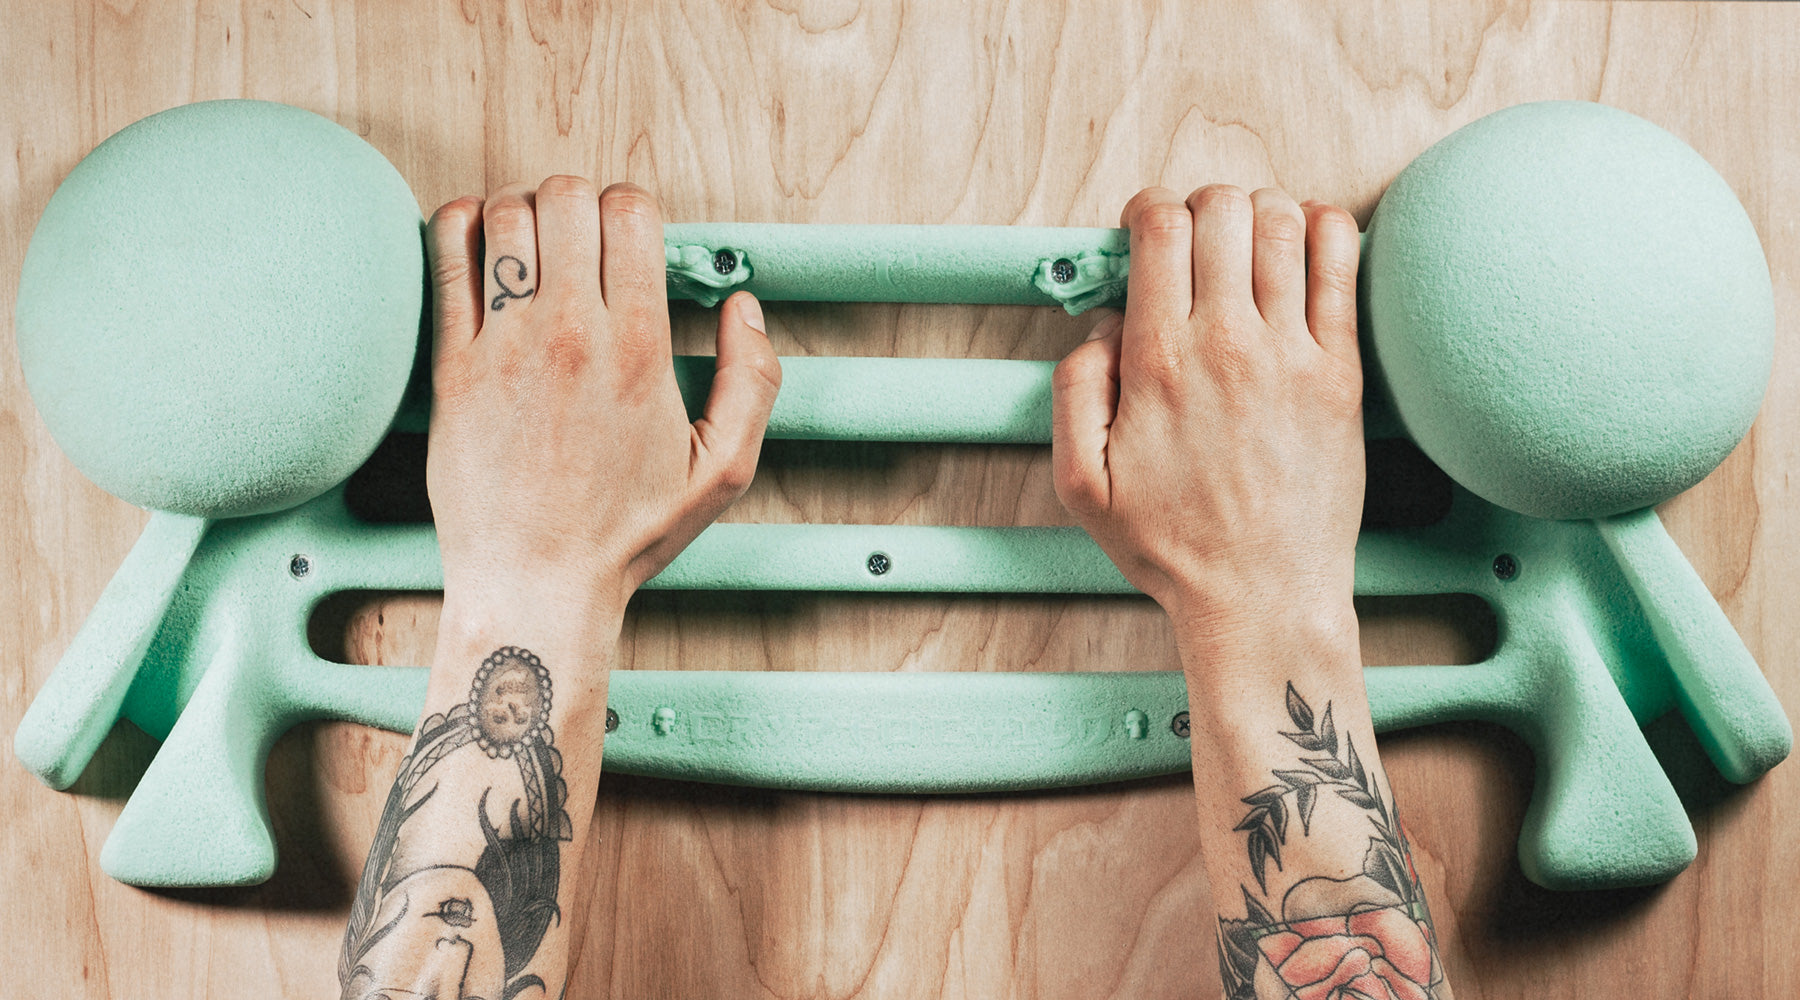 a man with tattoos trains on a seafoam so ill iron palm hang board